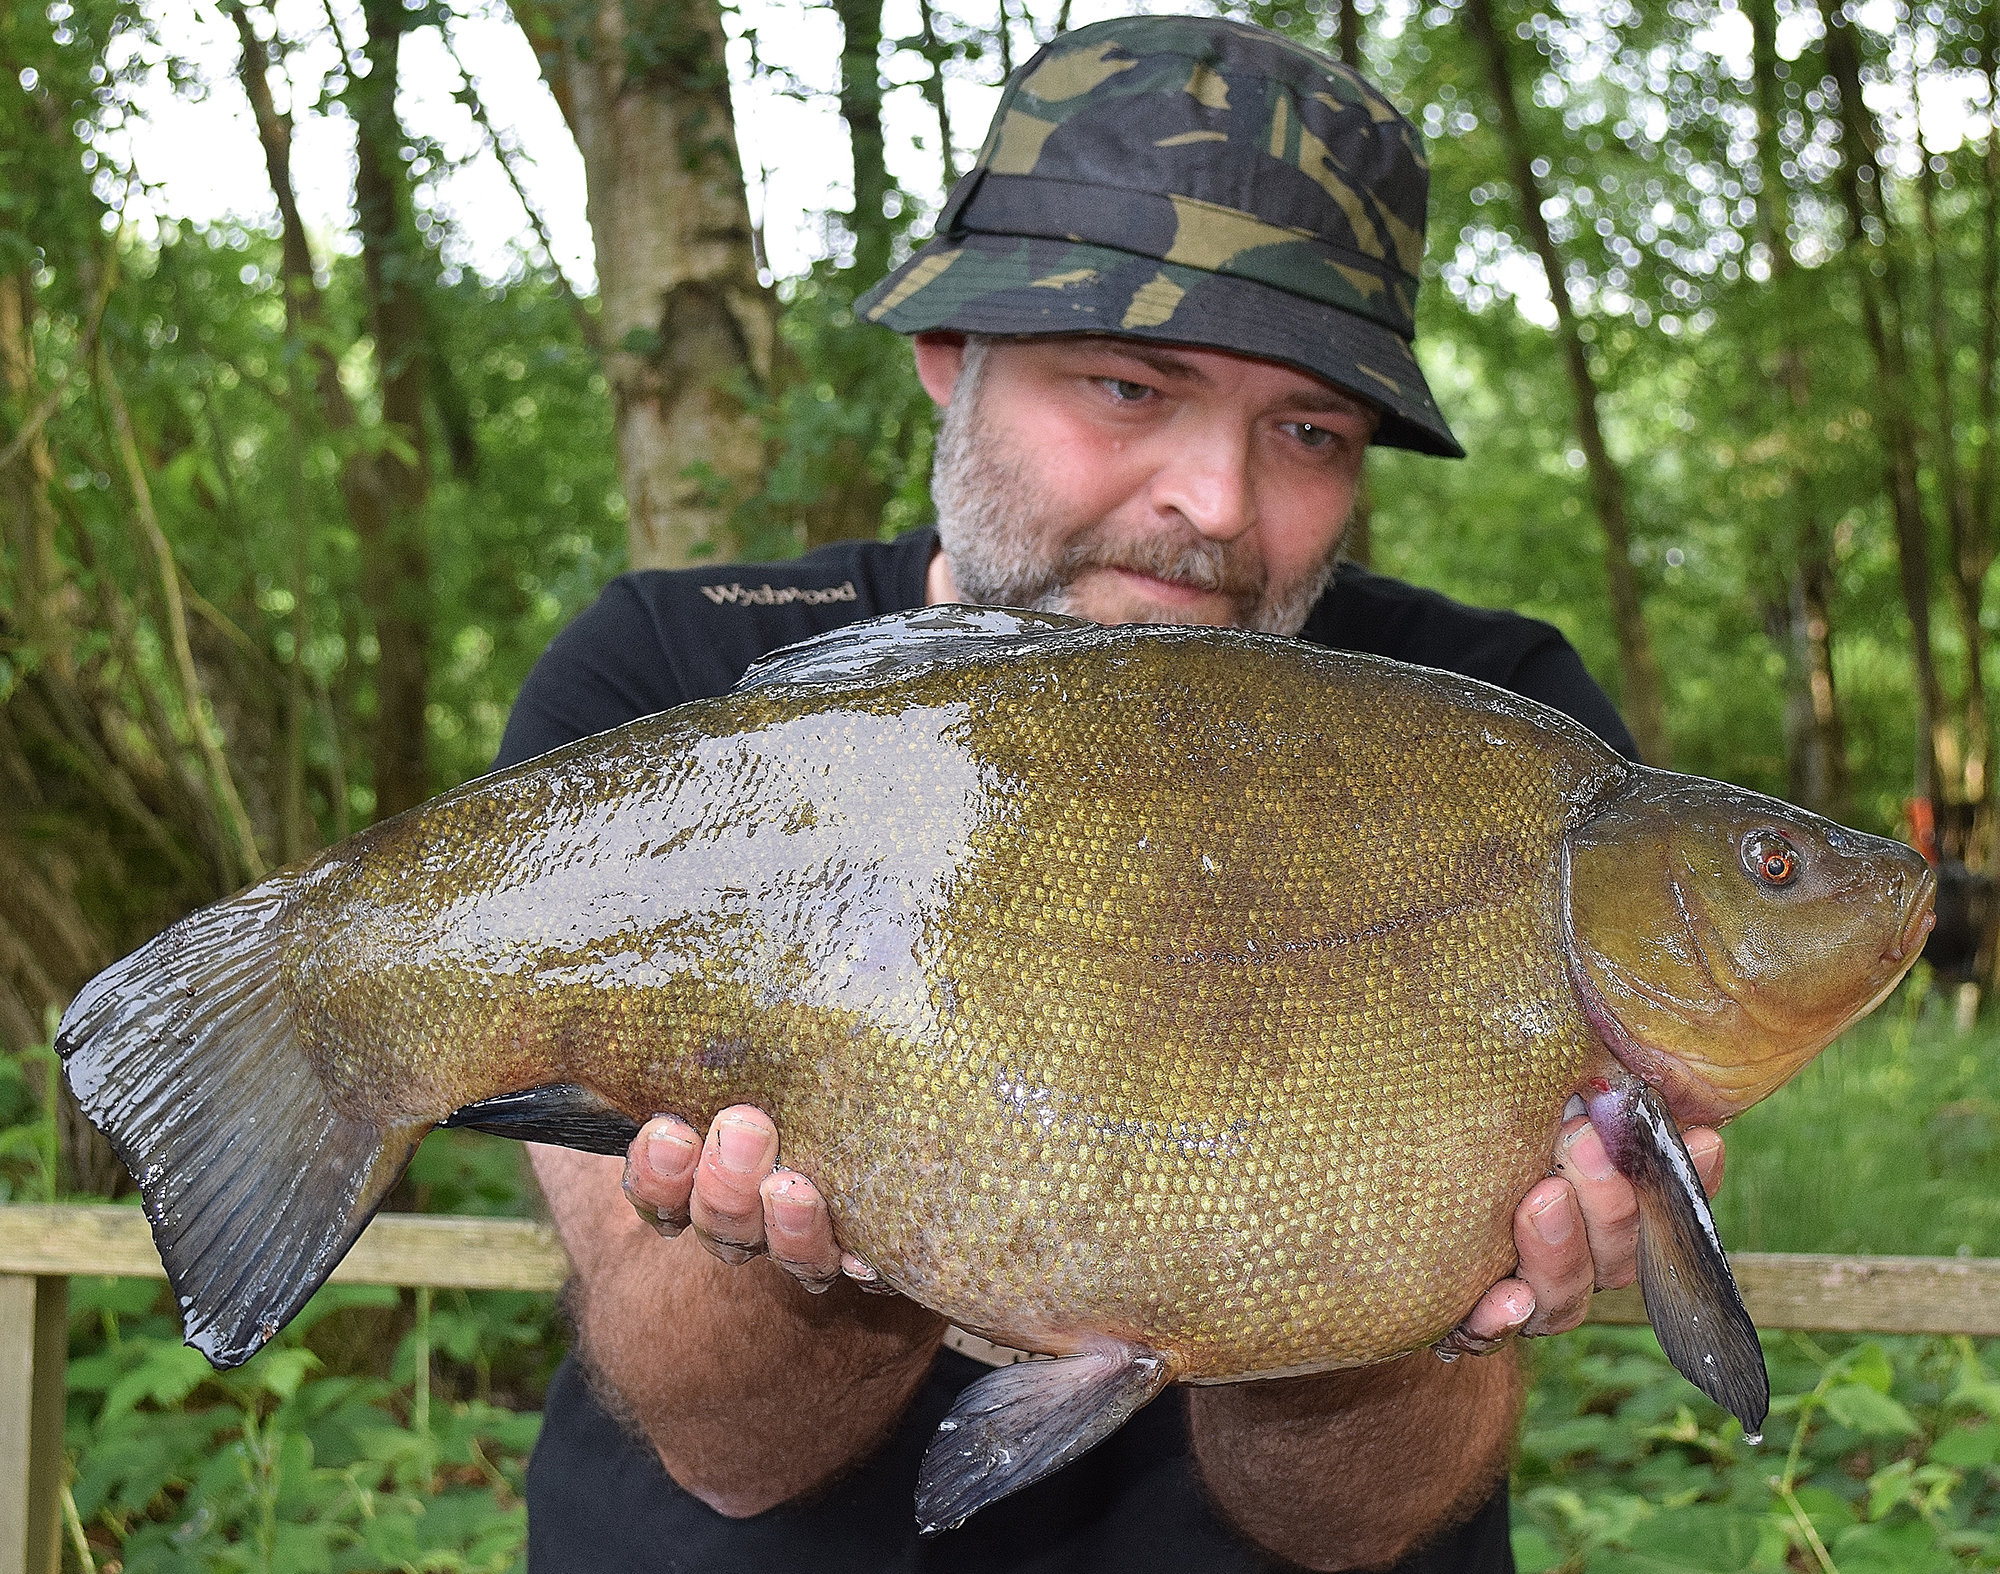 Big Rigs For Sale >> Biggest tench of the year - Angler's Mail